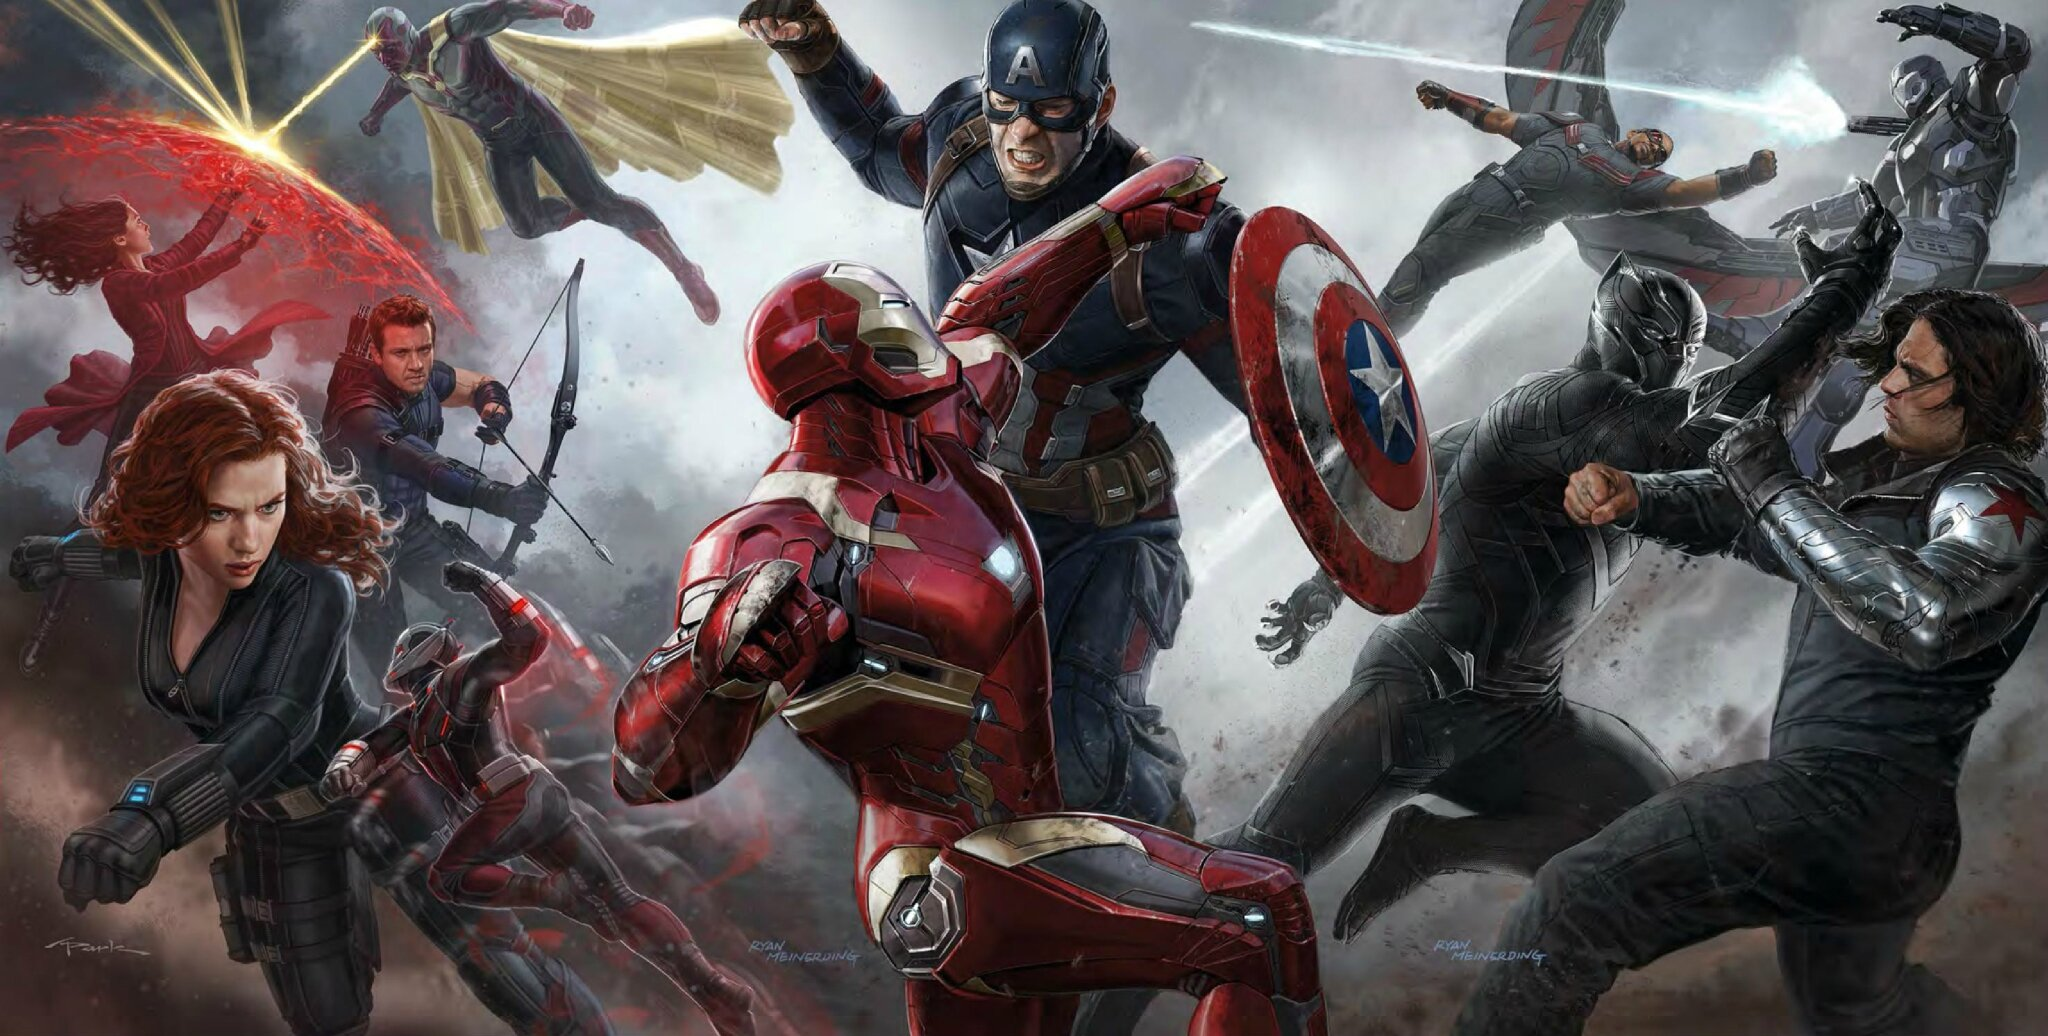 Captain America - Civil War et les superhéros égoïstes